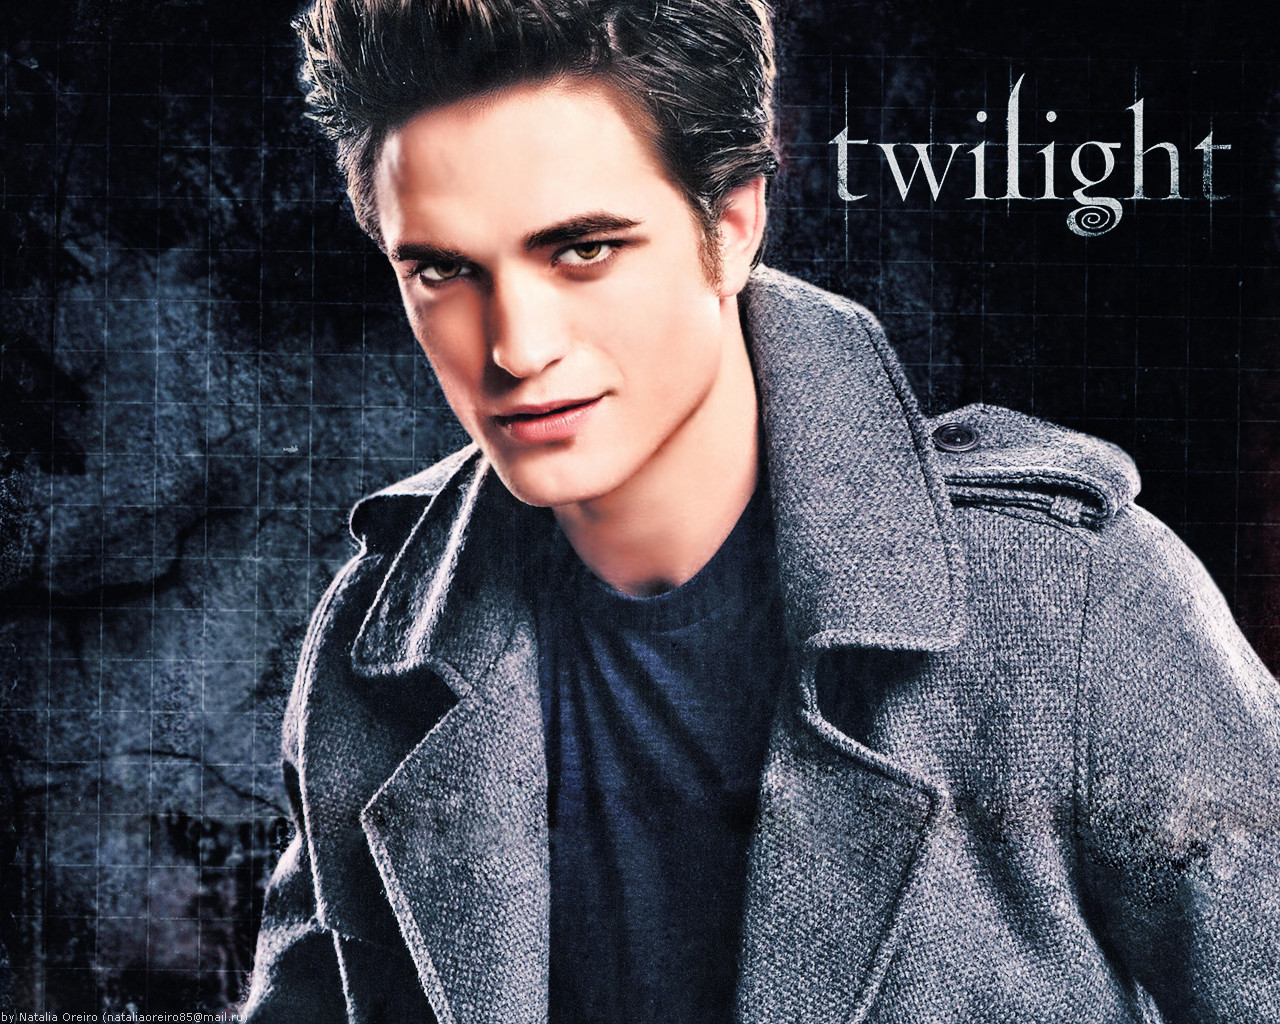 Image Gallary 9: edward cullen Beautiful twilight